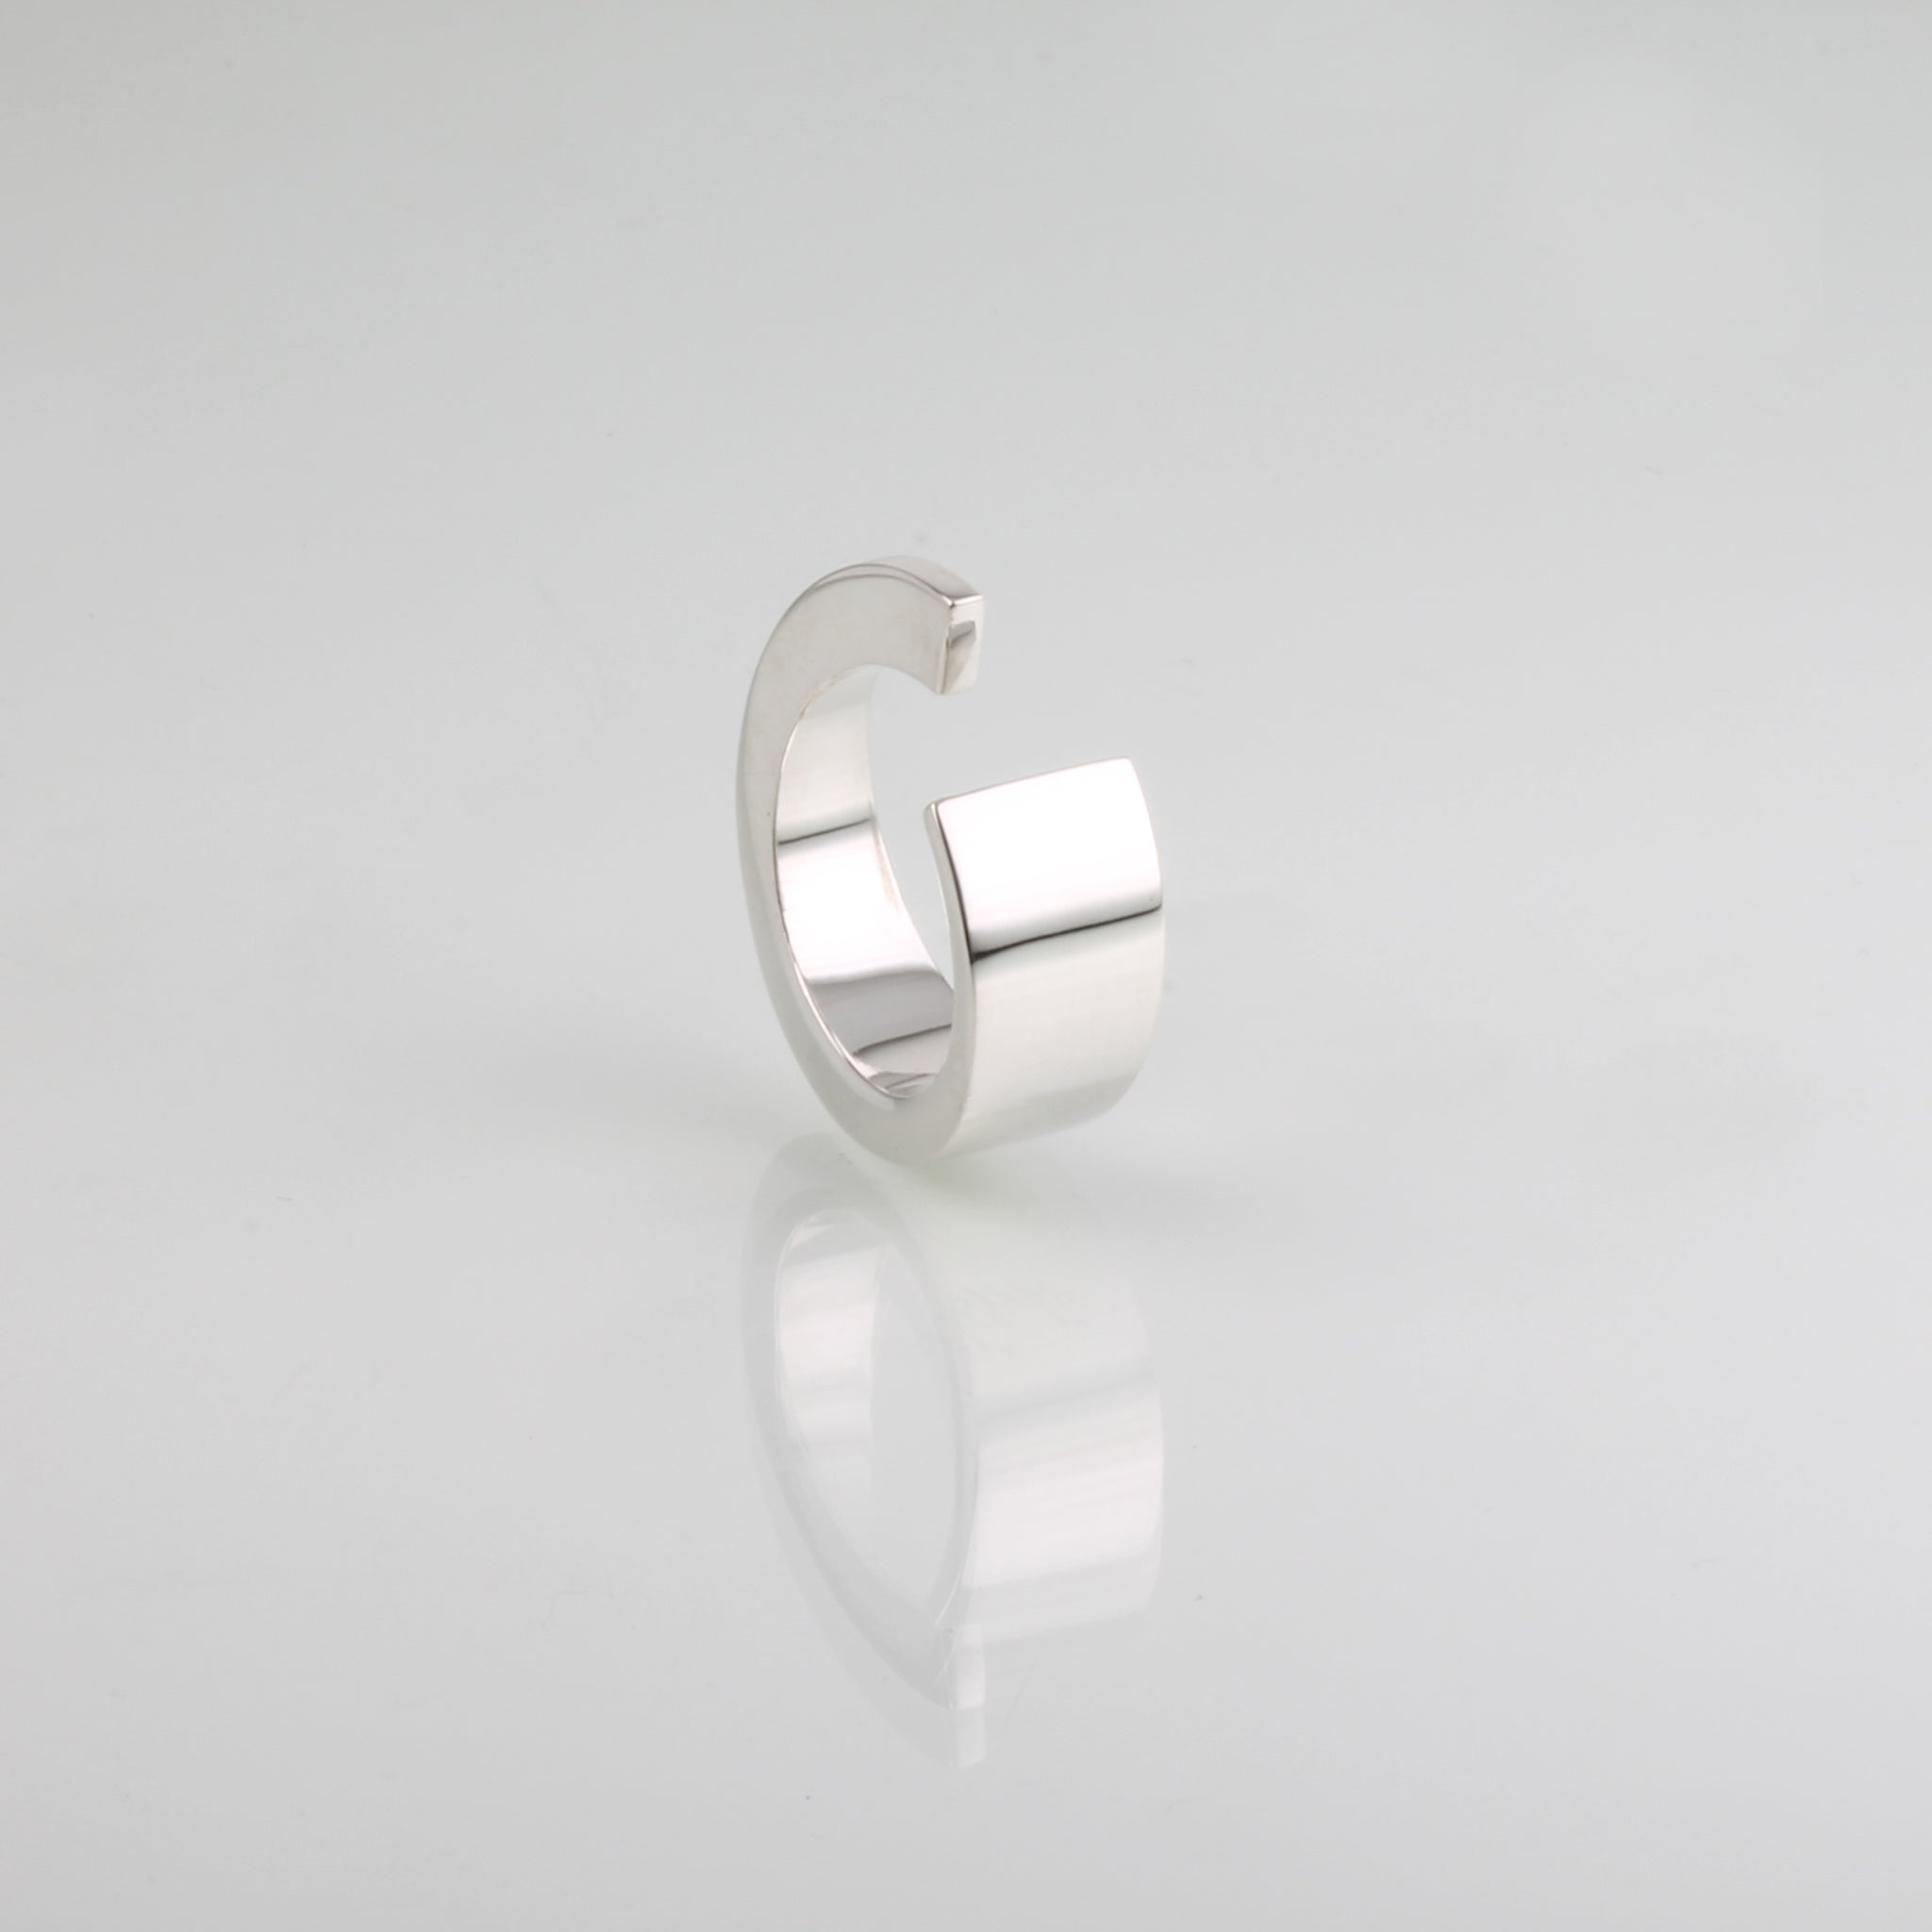 MIRROR twist ring